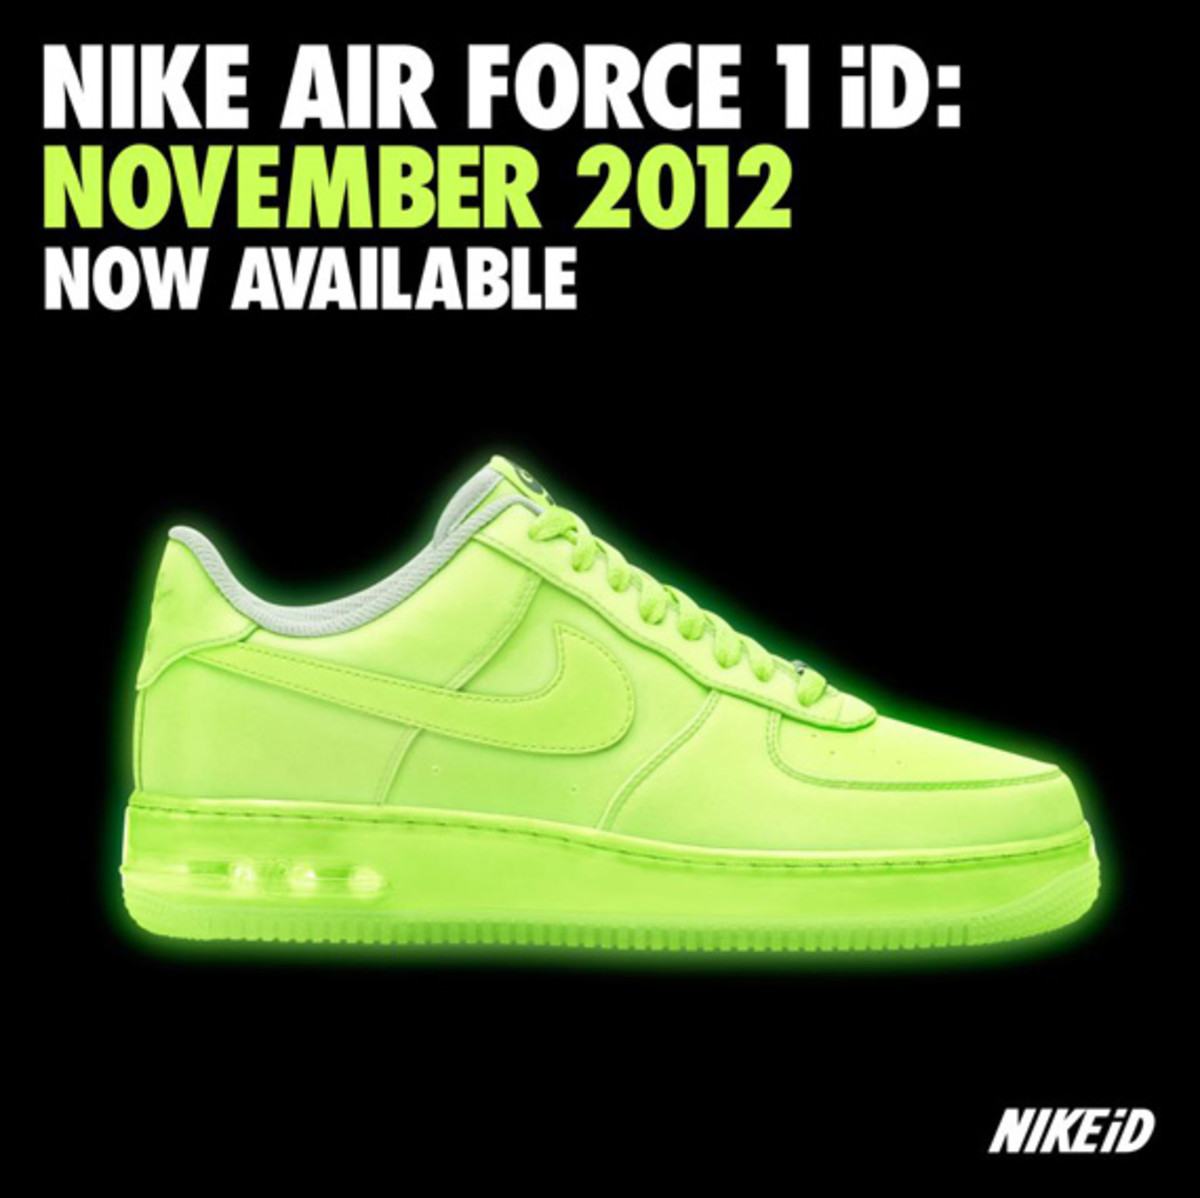 nikeid-air-force-1-id-november-2012-design-option-02